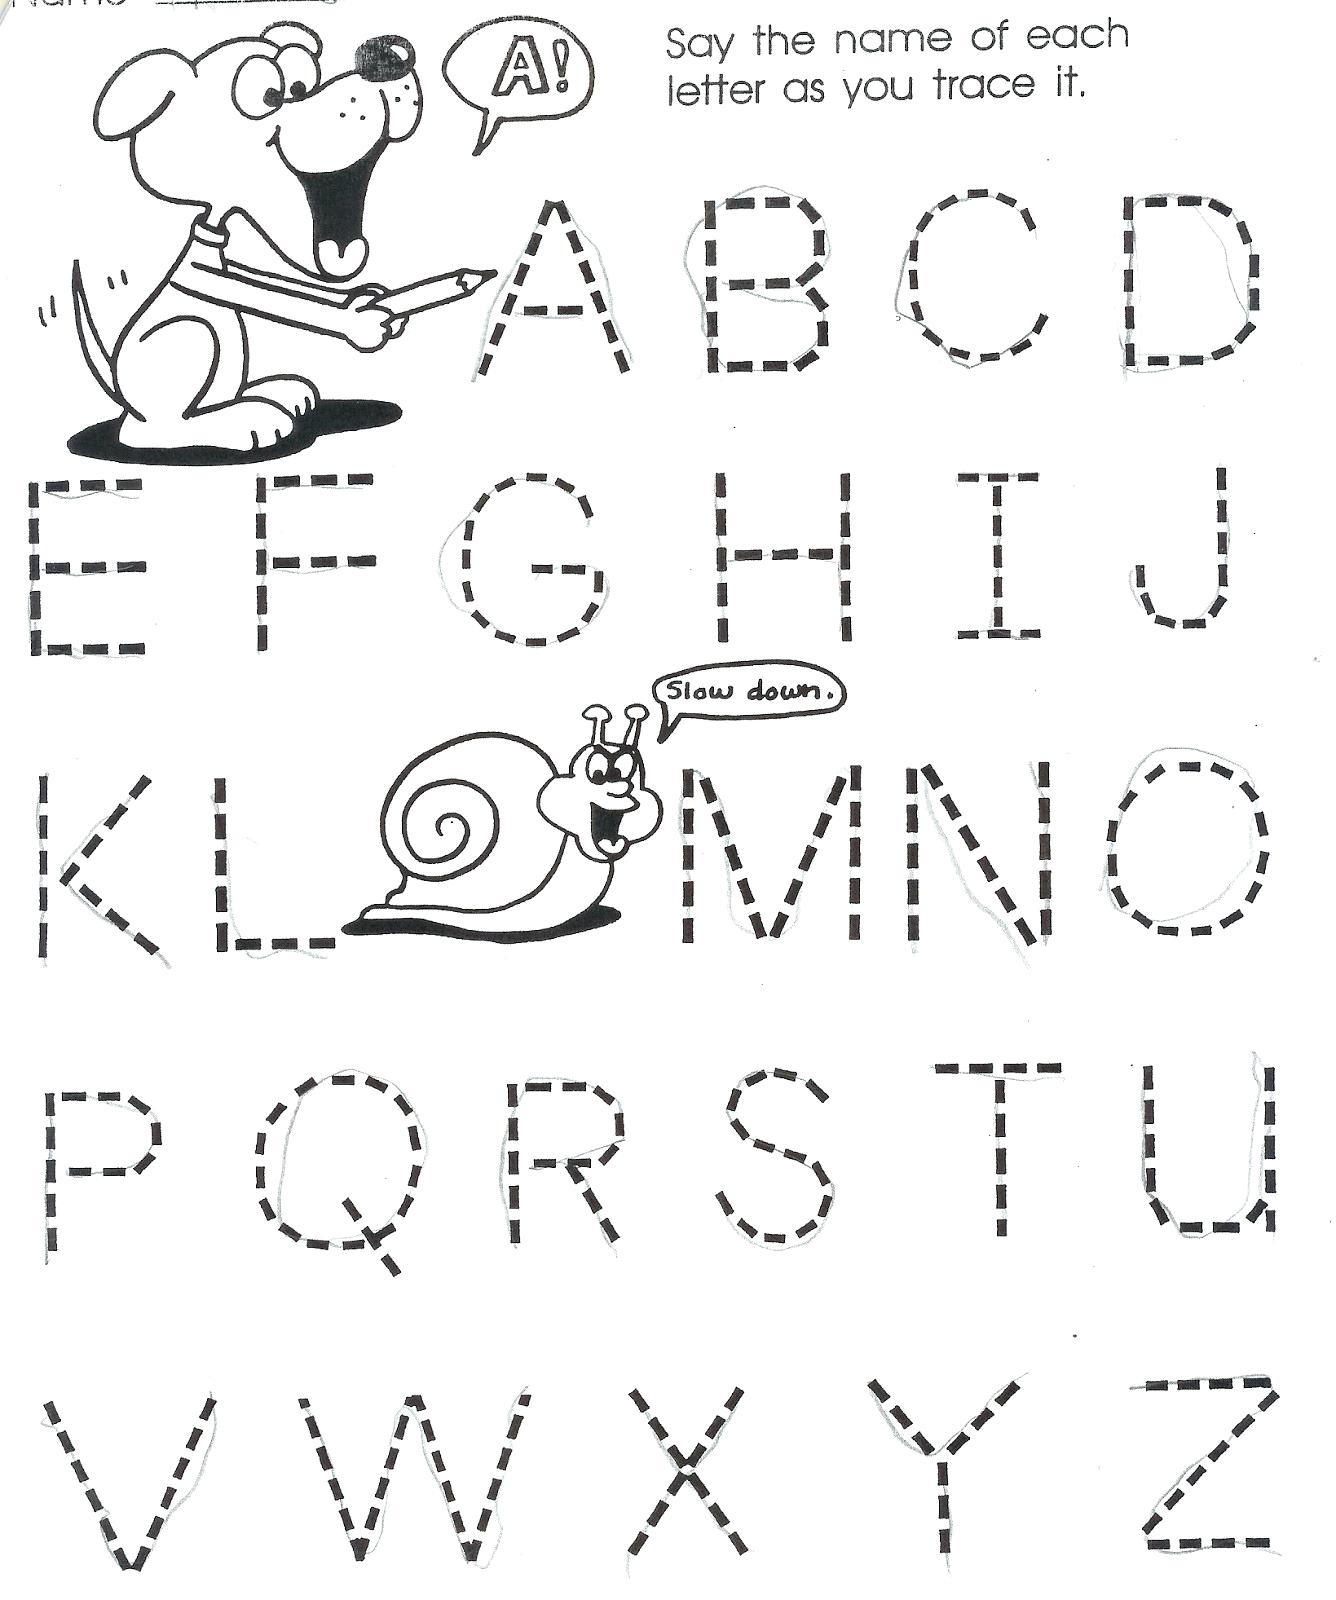 Worksheets For Year Old Letter Worksheet Letters Alphabet with regard to Alphabet Worksheets For 7 Year Olds